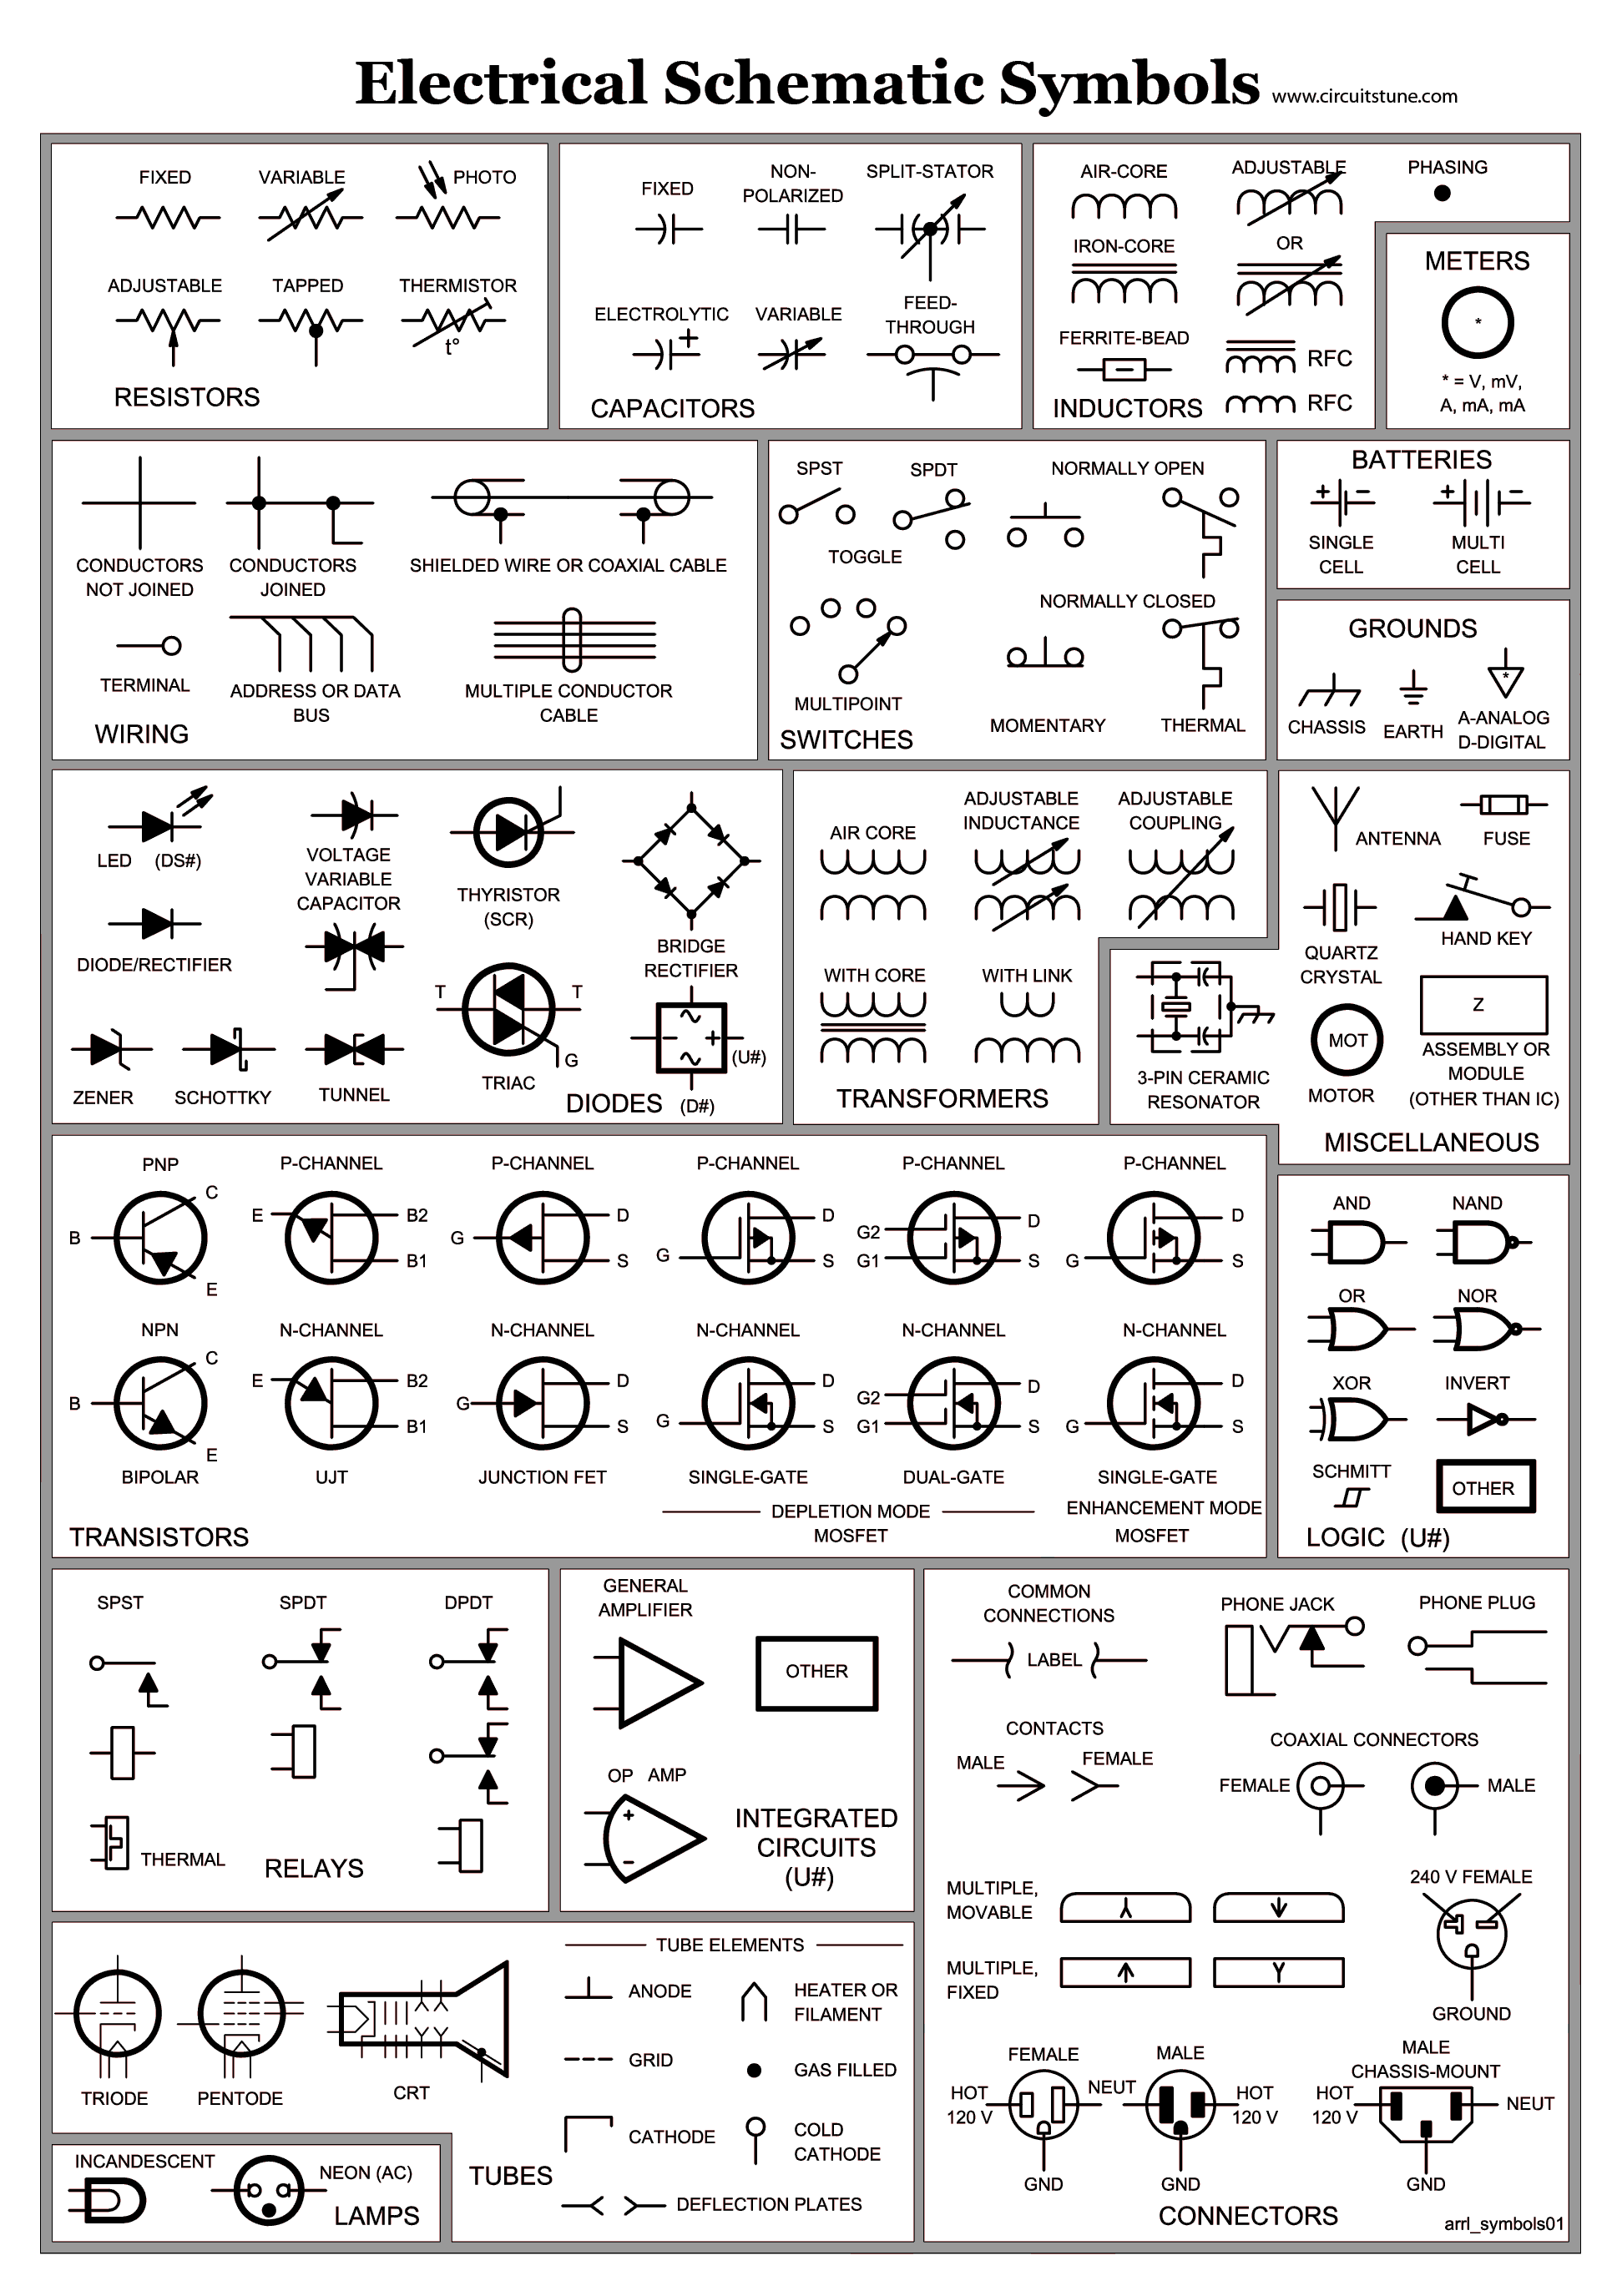 a65d176364692d2ebe913b58a654cfc3 wiring diagram switch symbol wiring diagrams automotive  at n-0.co